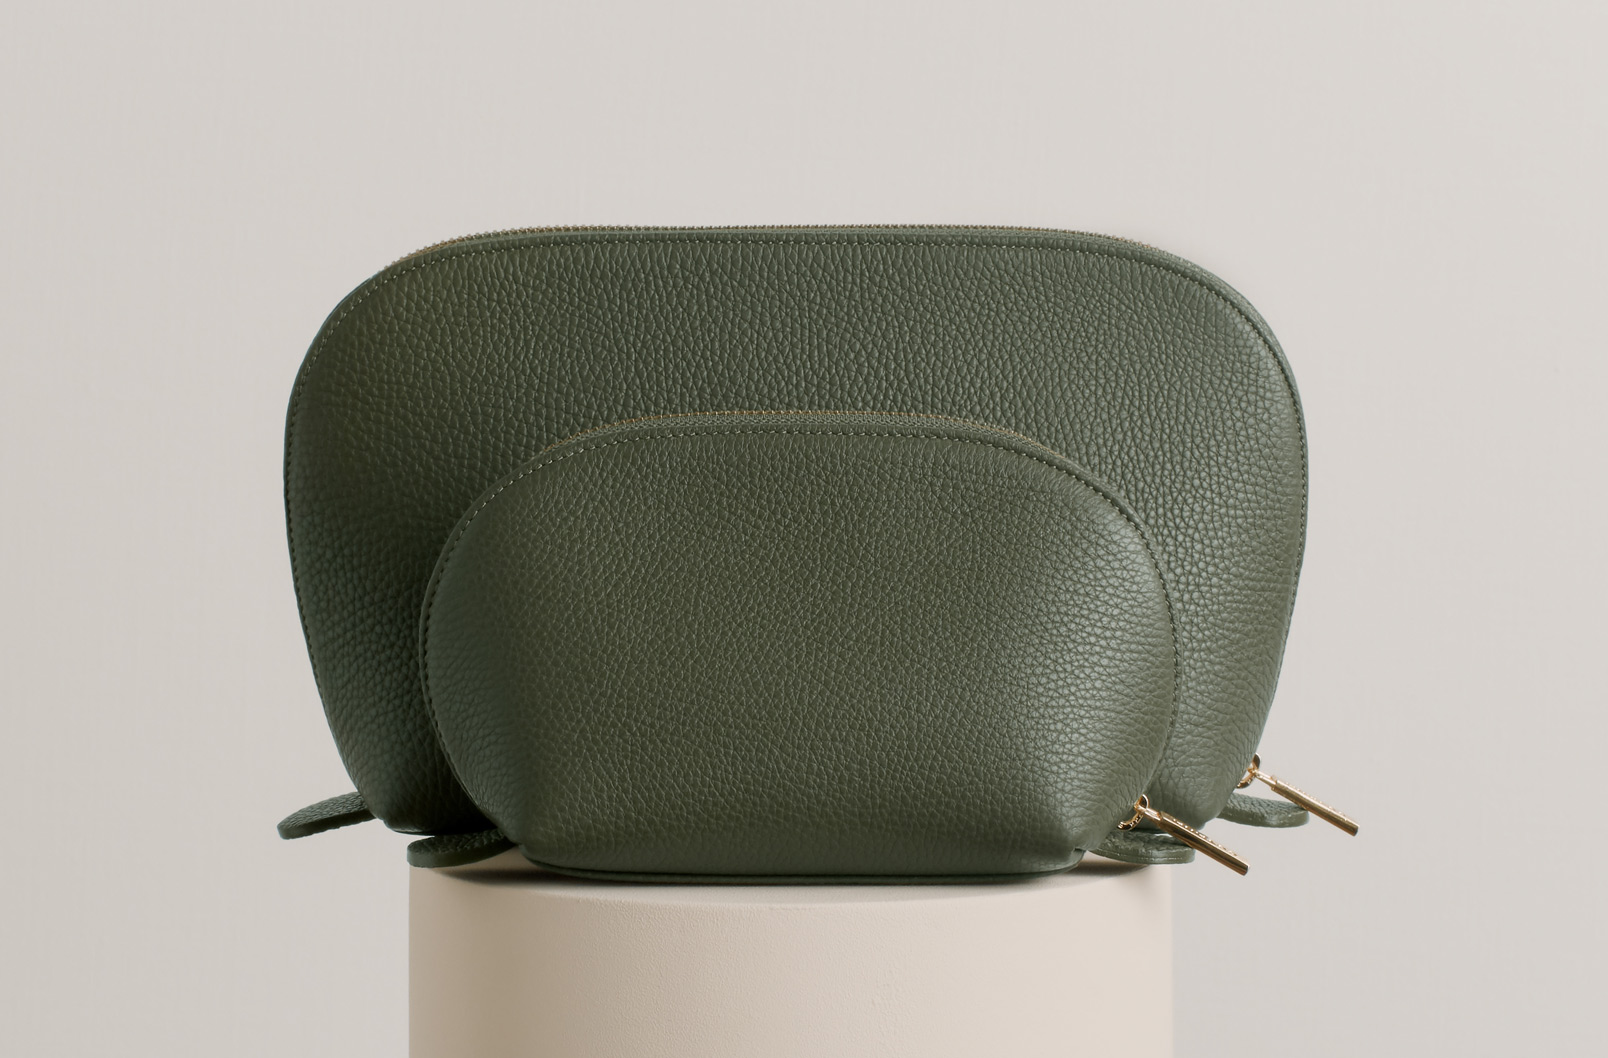 Cuyana Leather Travel Case Set In Olive